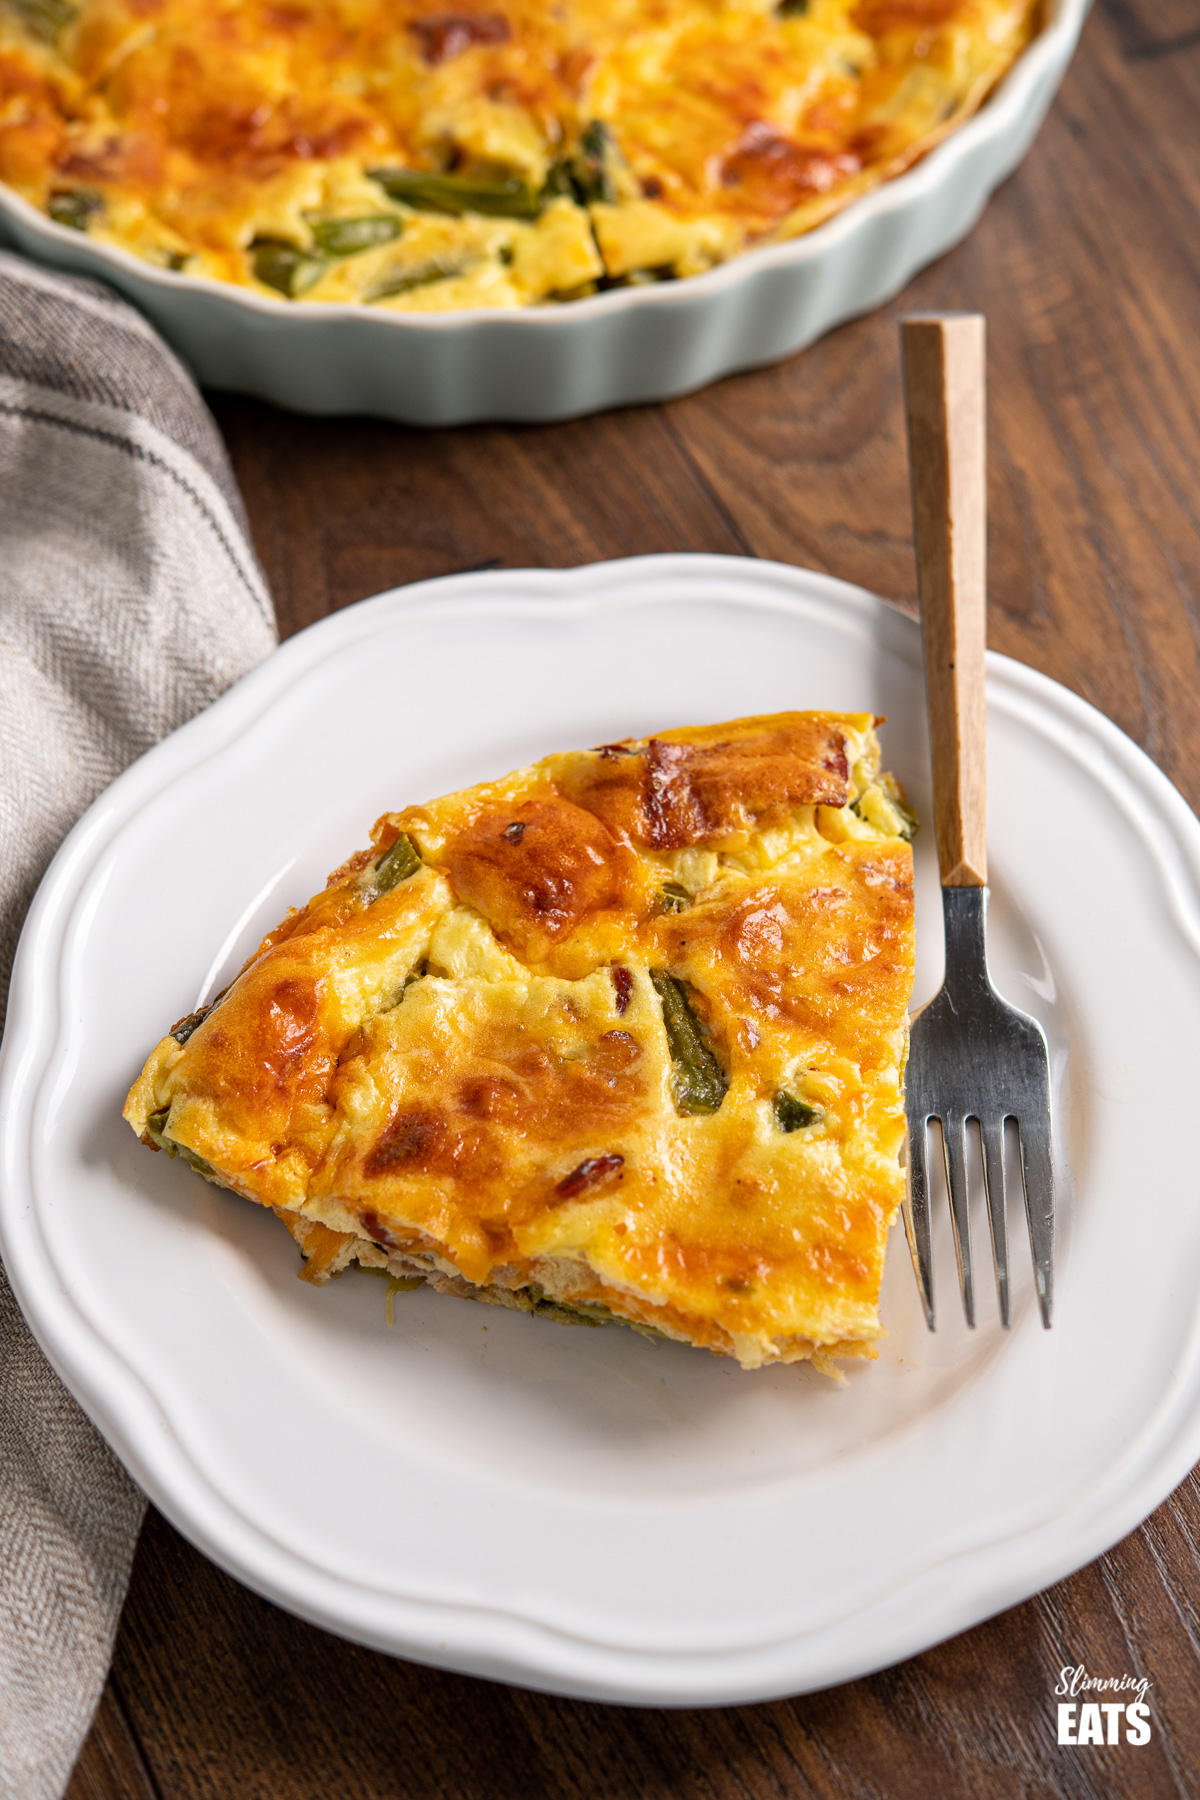 slice of Crustless Asparagus and Bacon Quiche on white plate with wooden handles fork.